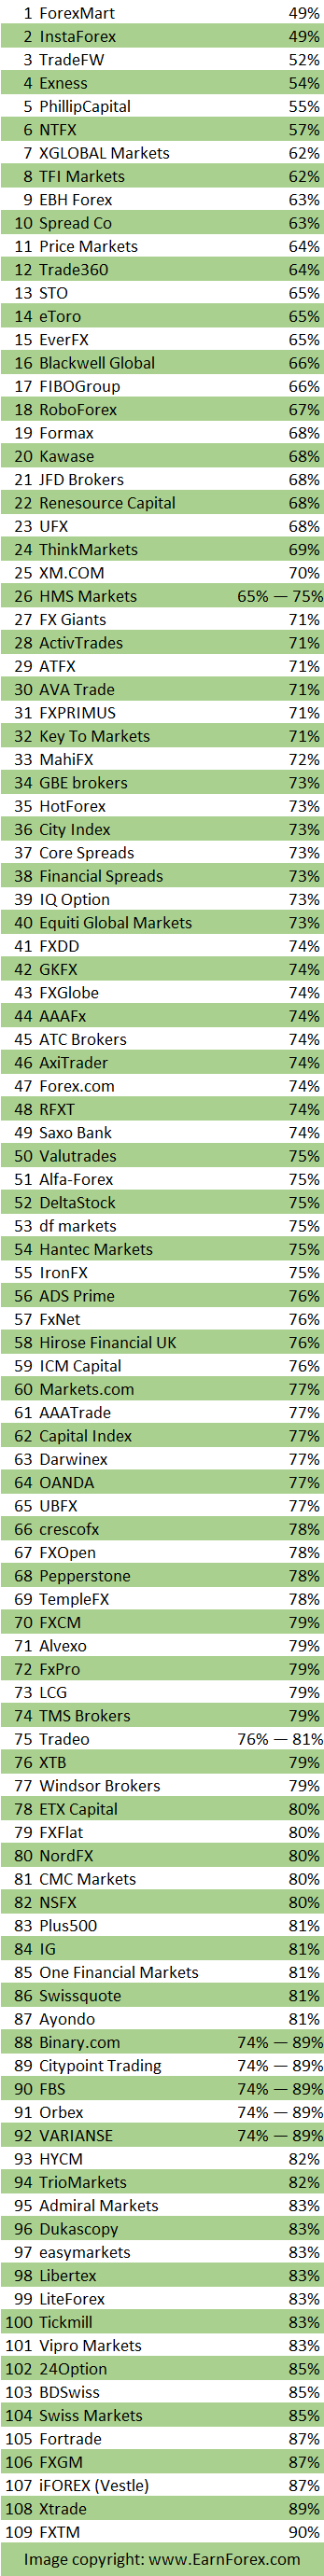 List of ESMA-regulated Forex brokers sorted by percentage of losing traders - January 2019